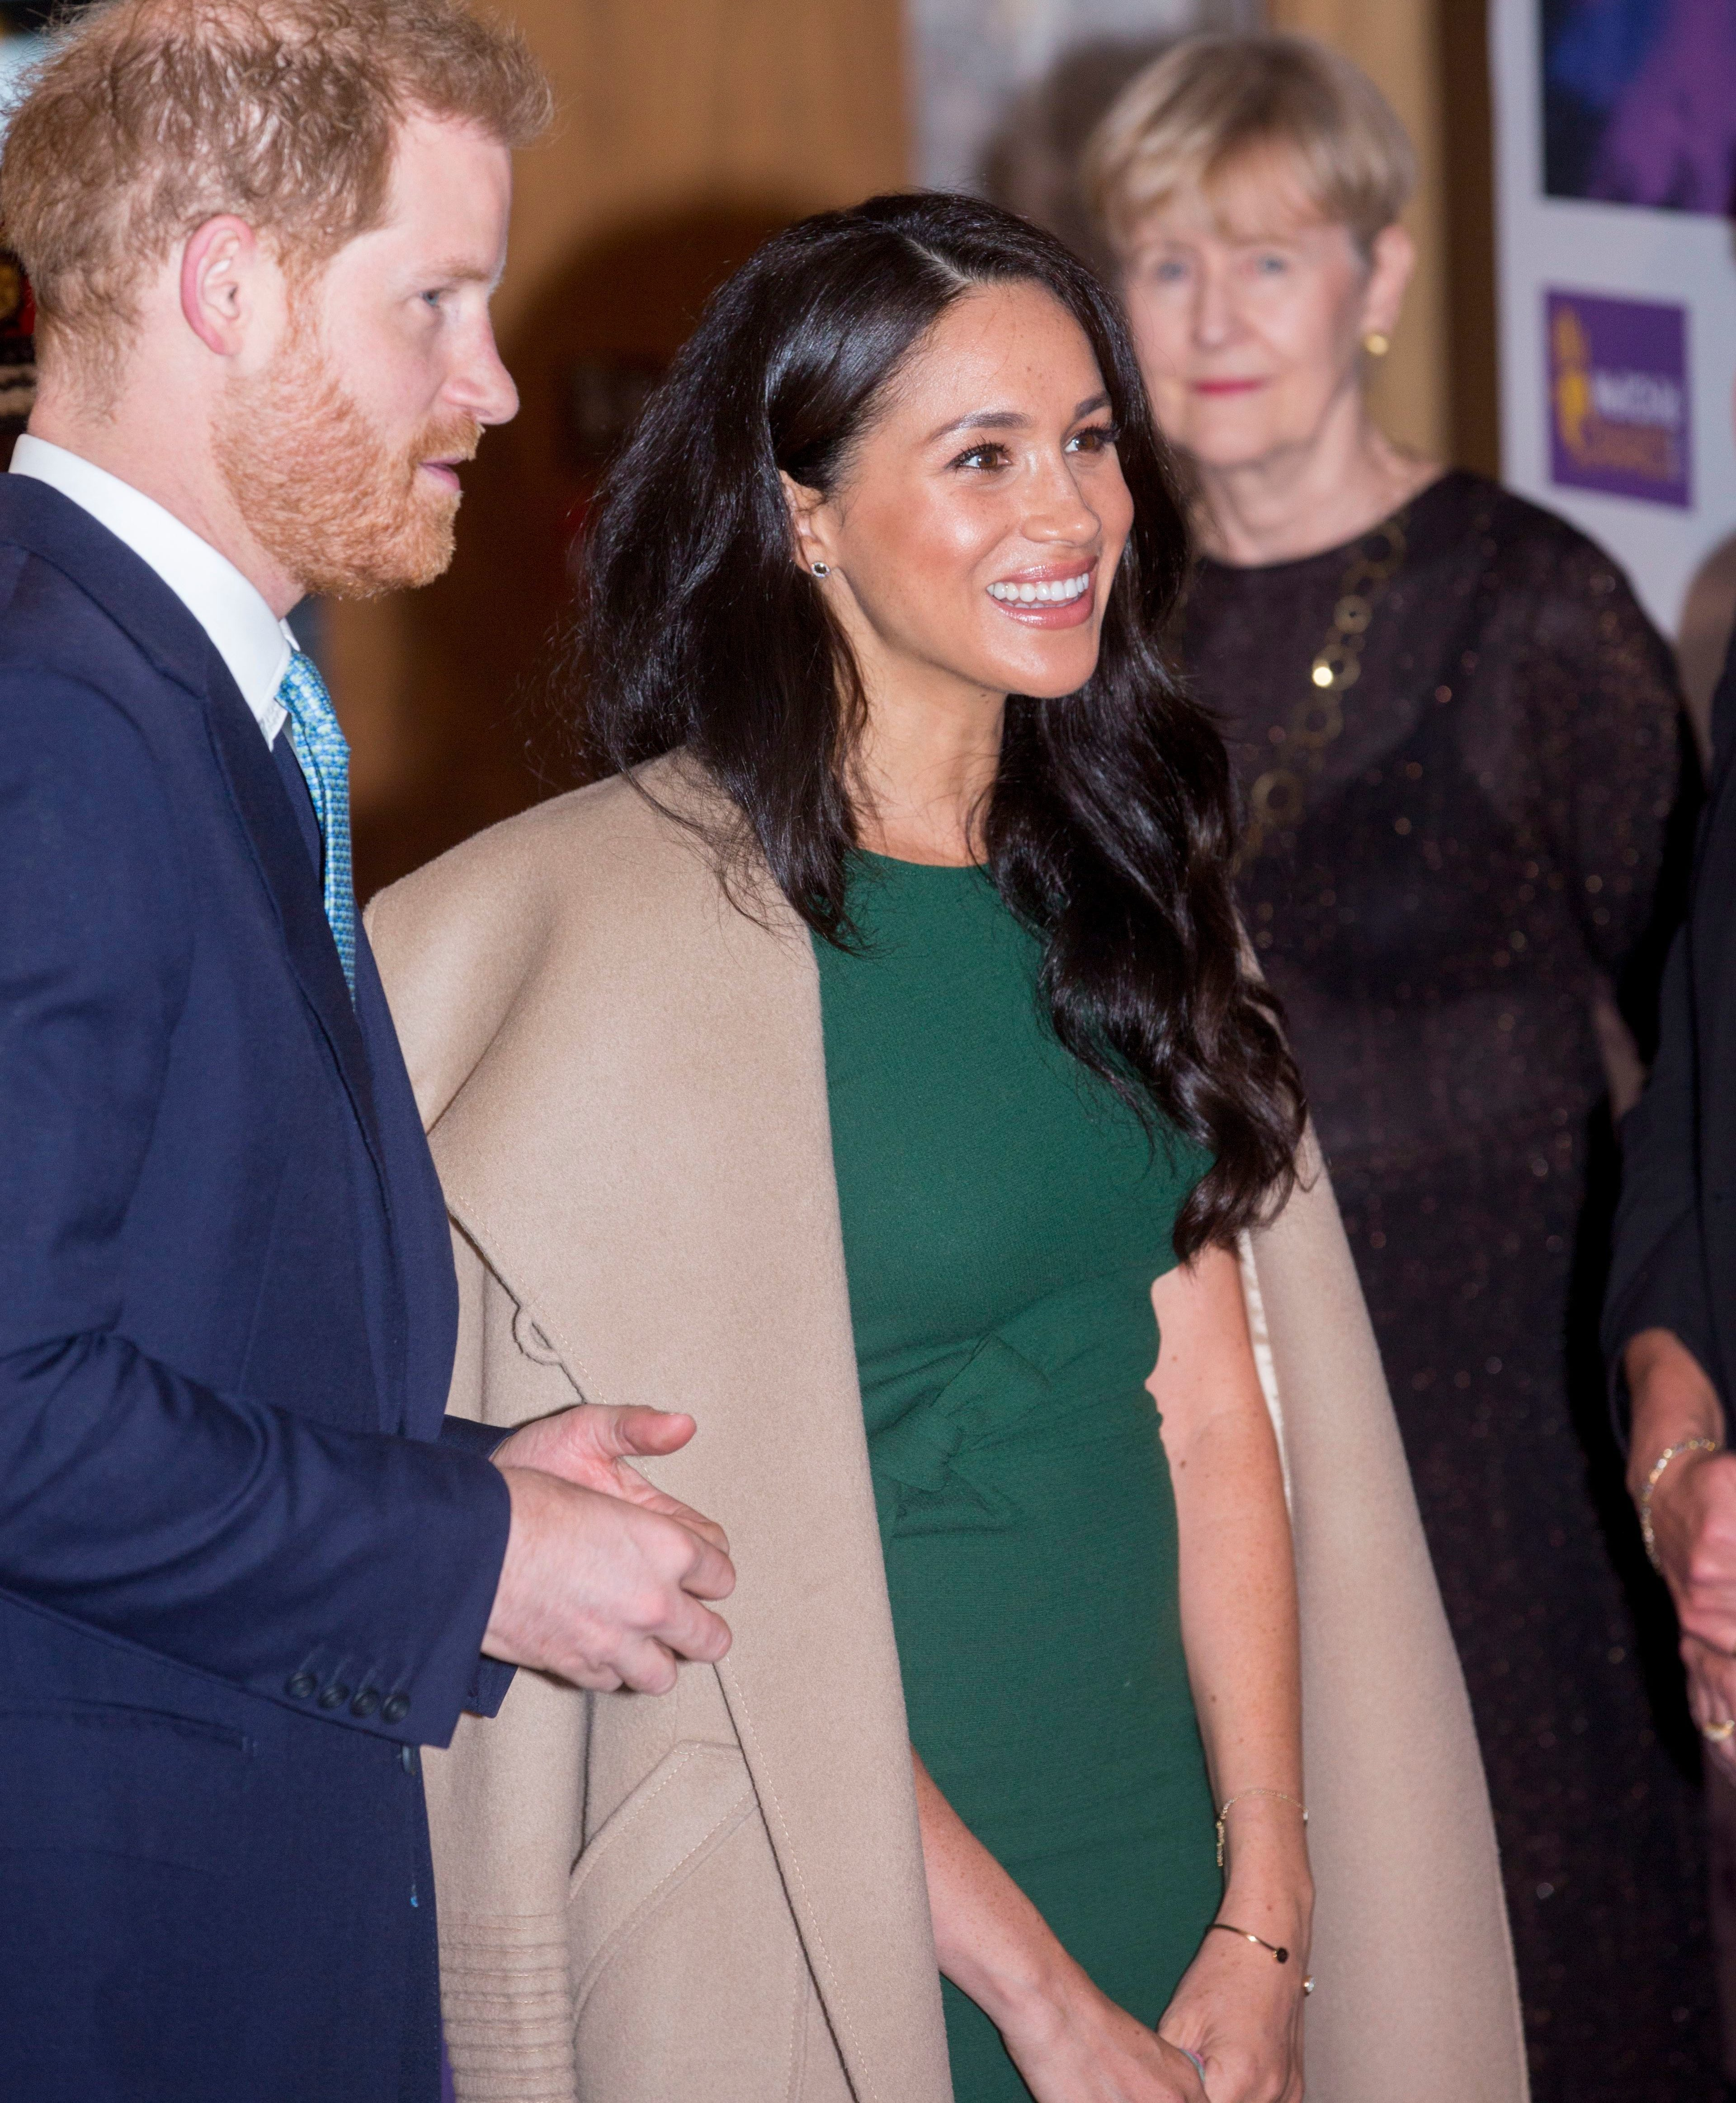 Mandatory Credit: Photo by Shutterstock (10444958m) Prince Harry and Meghan Duchess of Sussex WellChild Awards, Royal Lancaster Hotel, London, UK - 15 Oct 2019 The Duke and Duchess of Sussex will attend the annual WellChild Awards where they will praise the courage of seriously ill children and their families, and thank those who care for and support them. The WellChild Awards celebrate the inspiring qualities of some of the country's seriously ill young people and the dedication of those who go the extra mile to keep children healthy and happy, including the outstanding health, social care and education professionals.